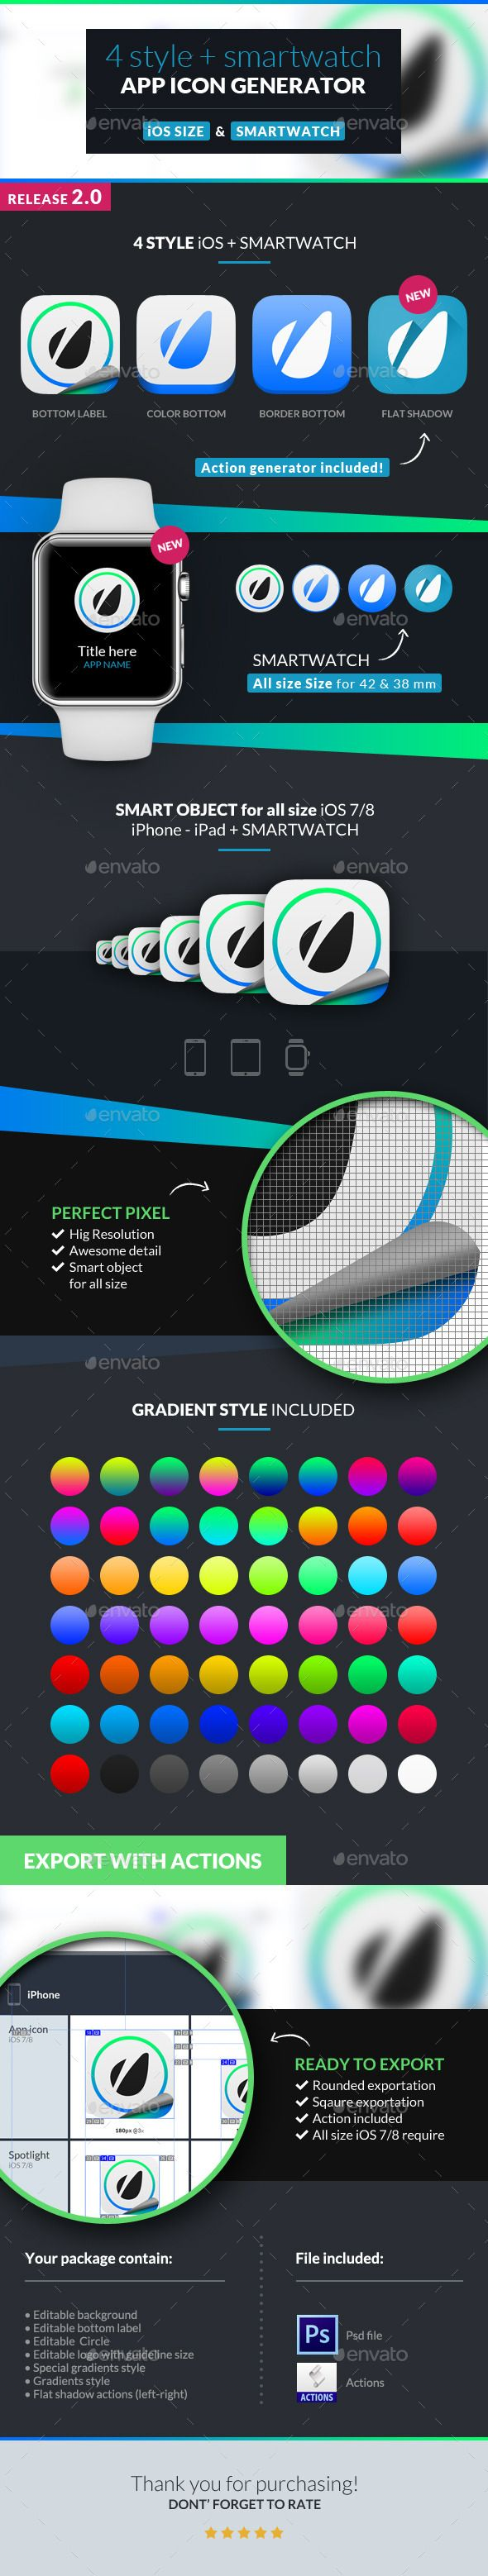 App Icon Generator 4 Style + Smartwatch — Photoshop PSD #icons #mobile • Available here → https://graphicriver.net/item/app-icon-generator-4-style-smartwatch/10468852?ref=pxcr